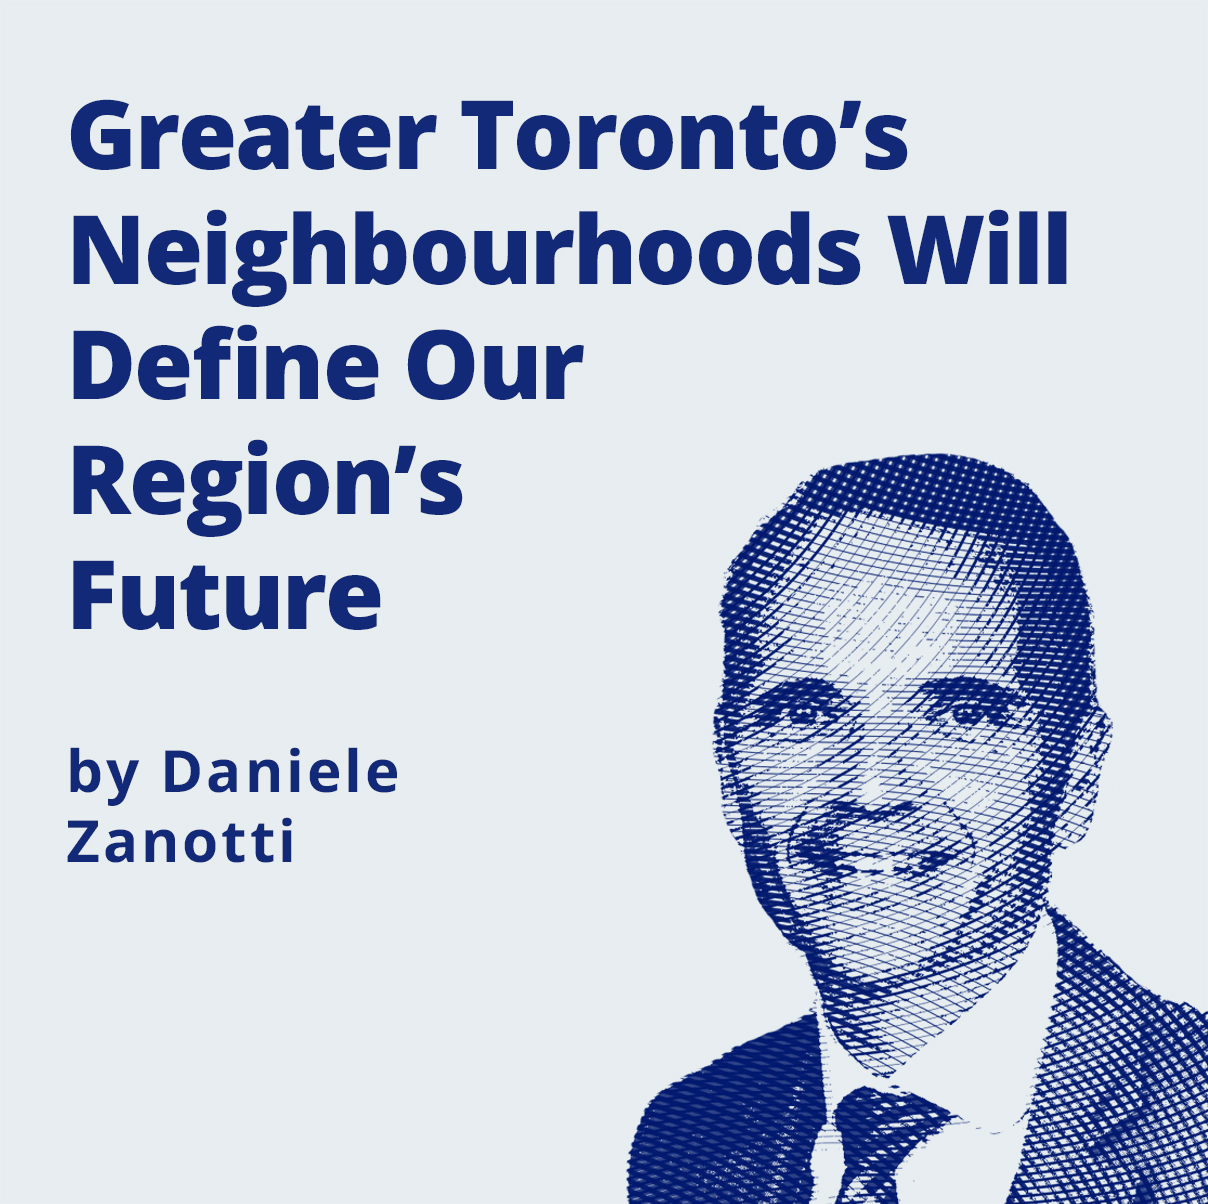 Image -  Greater Toronto's Neighbourhoods Will Deine Our Region's Future by Daniele Zanotti